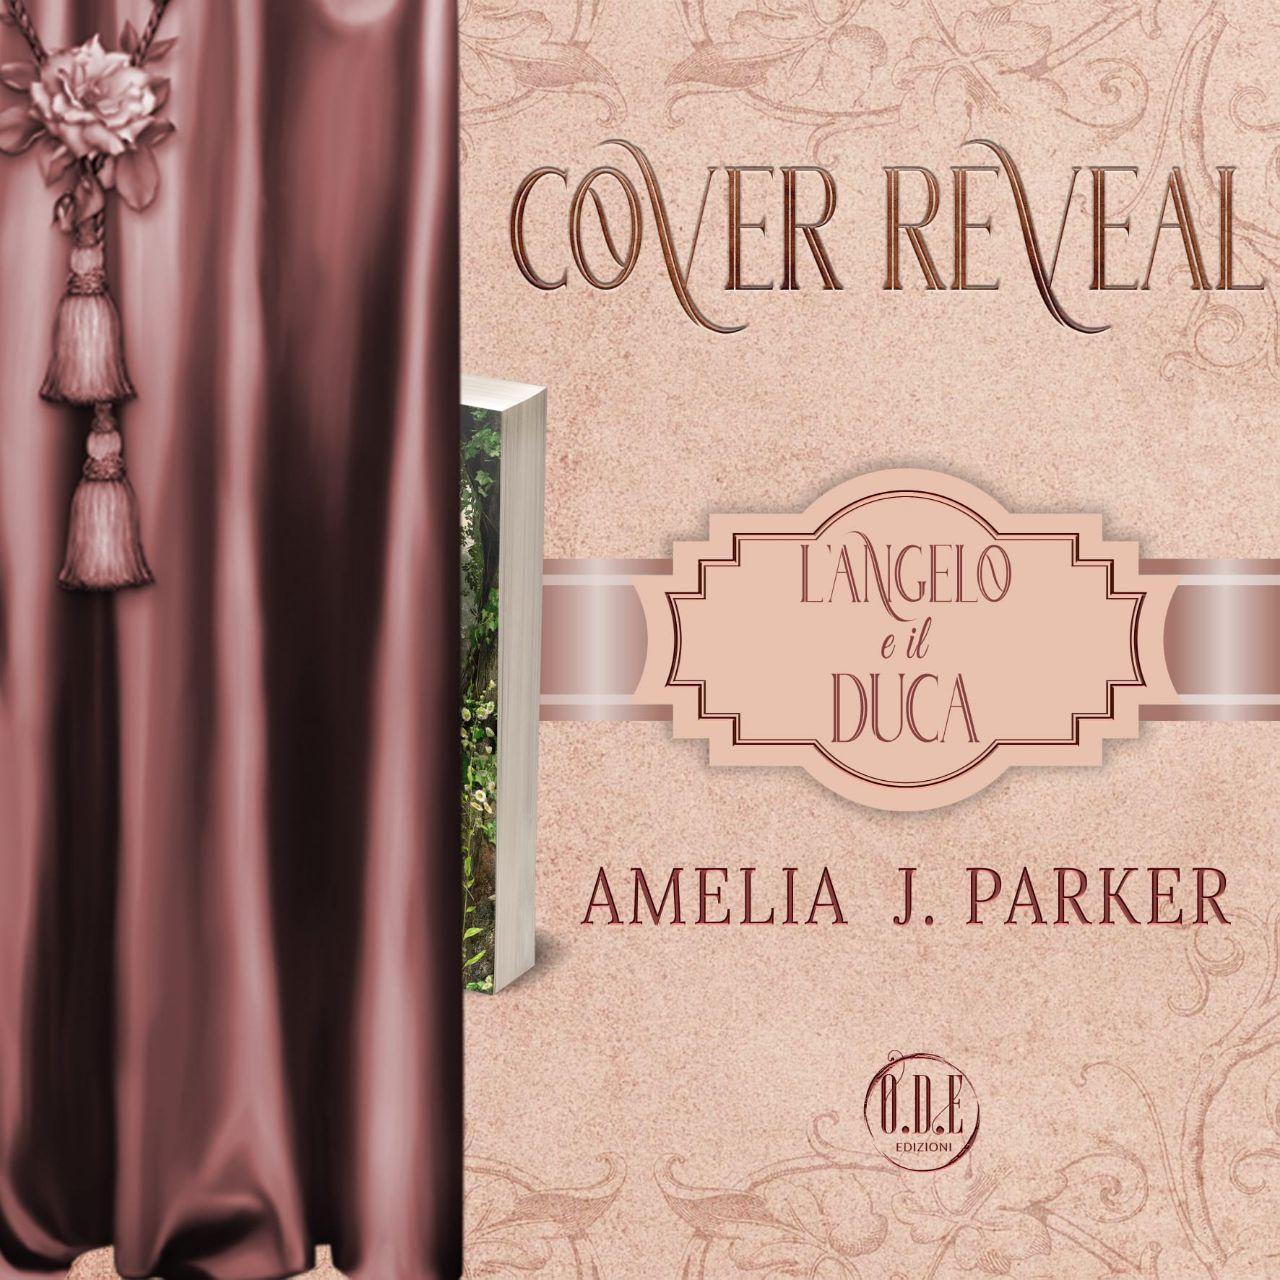 Cover Reveal L'angelo e il duca